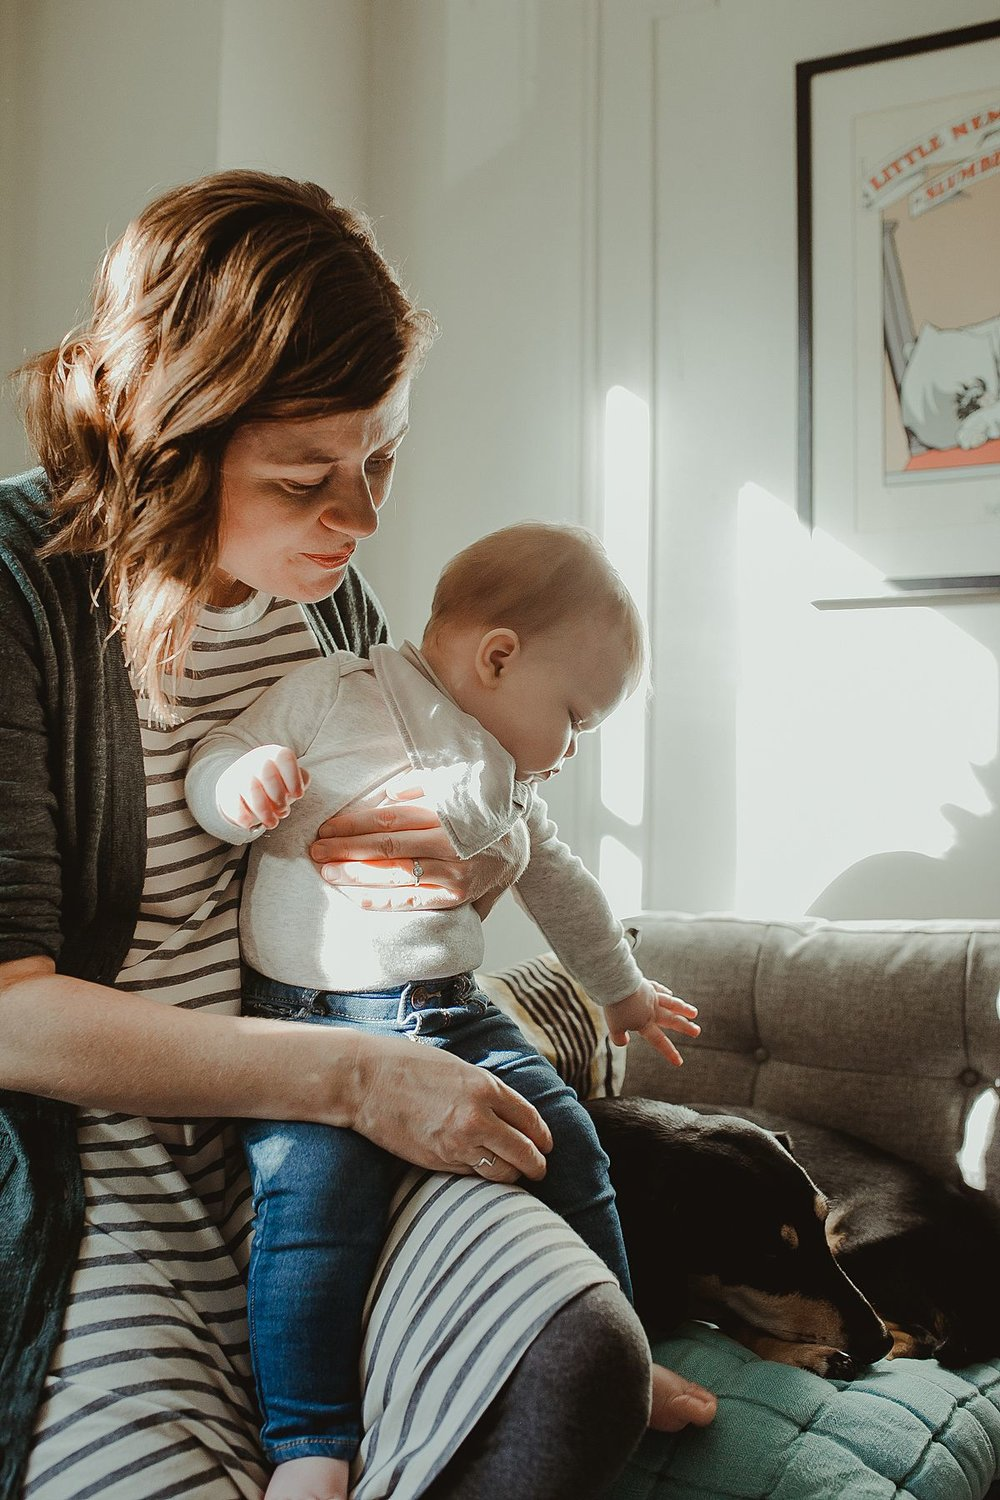 mom, baby and dog on sun filled living room during documentary family photo session. image by nyc family photographer krystil mcdowall